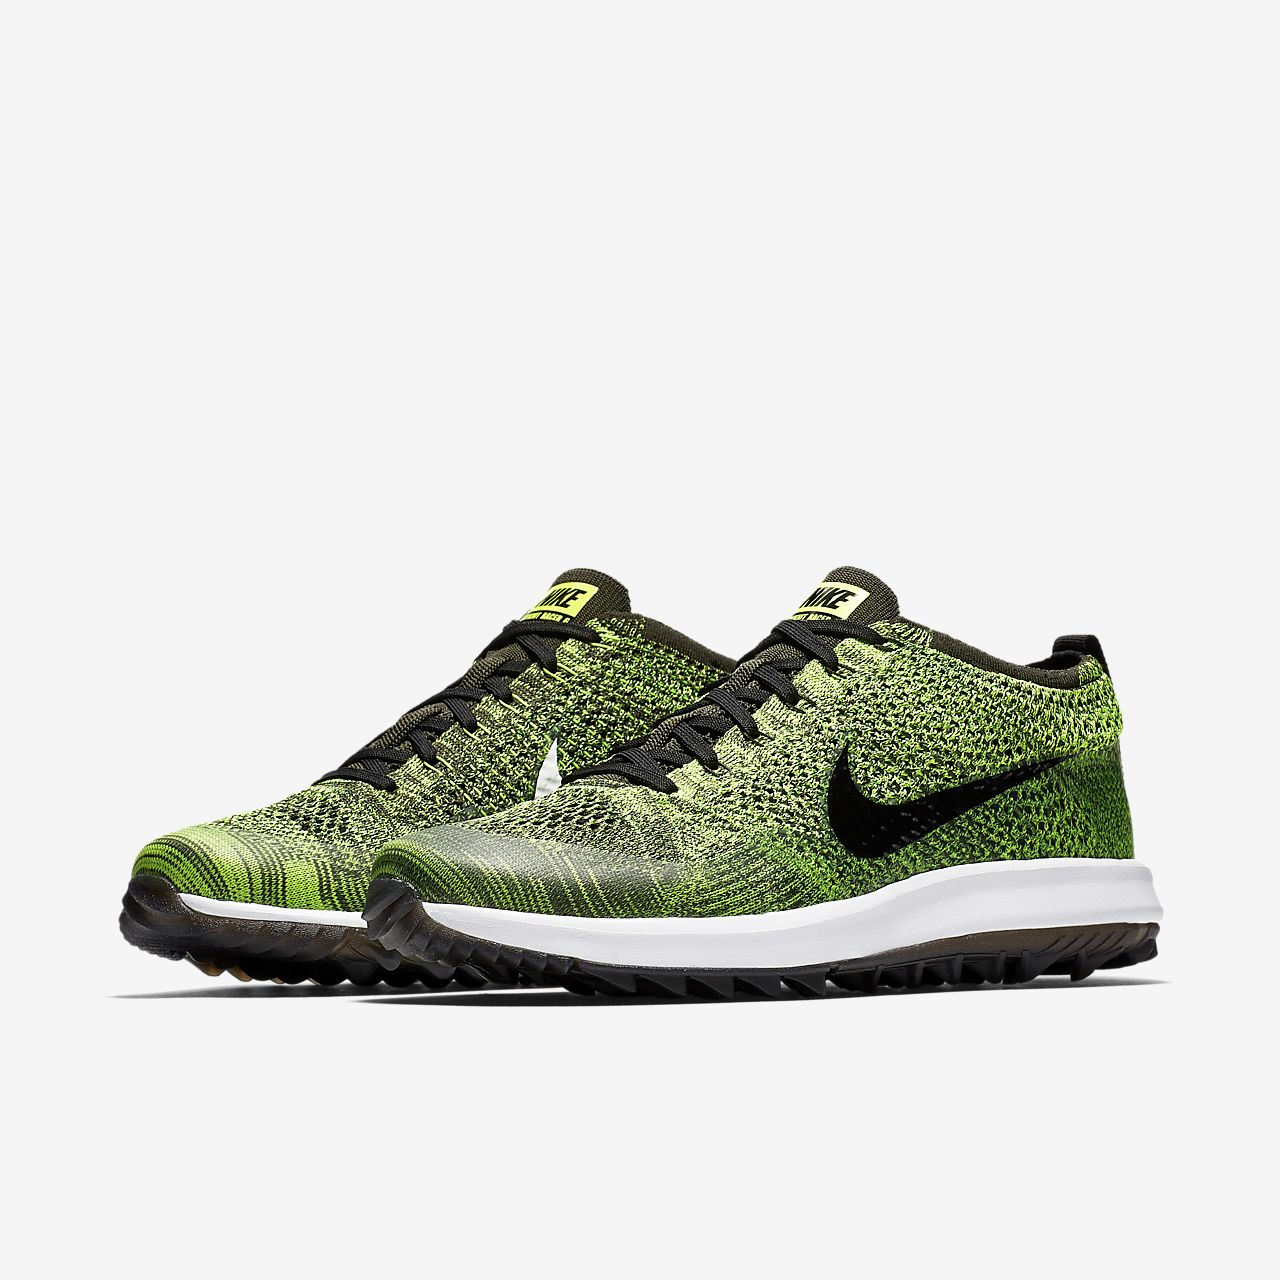 premium selection 72f35 49672 ... Nike Flyknit Racer G Mens Golf Shoe